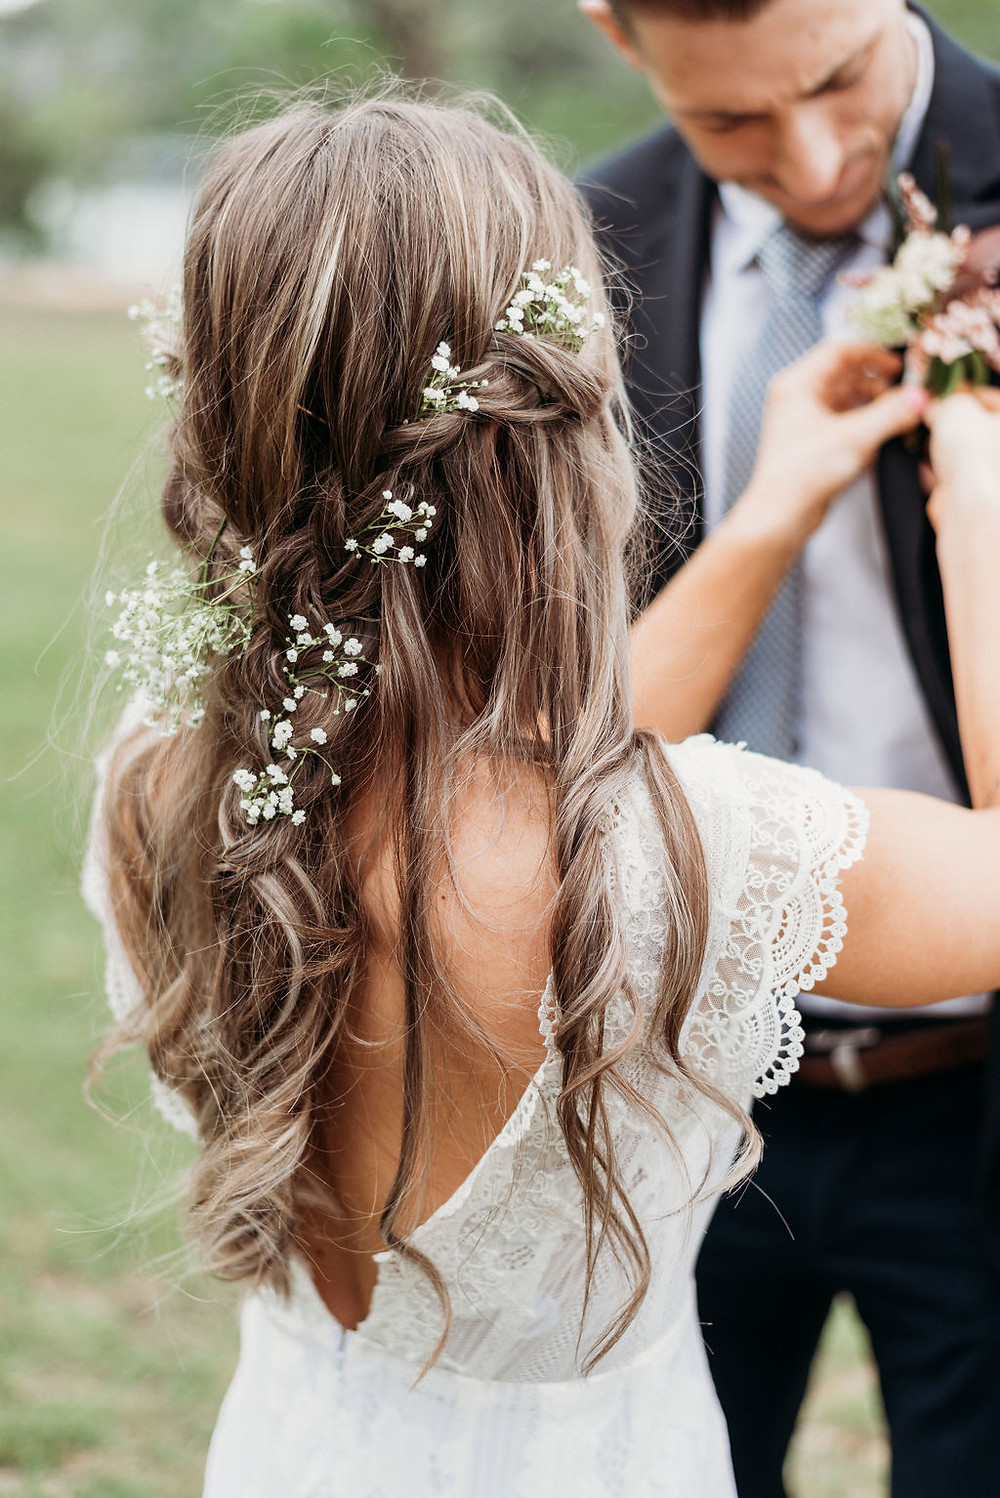 bride pins boutonnière on groom's lapel. You can see the back of the bride's to see her boho hair style with baby's breath in her hair for her austin elopement.